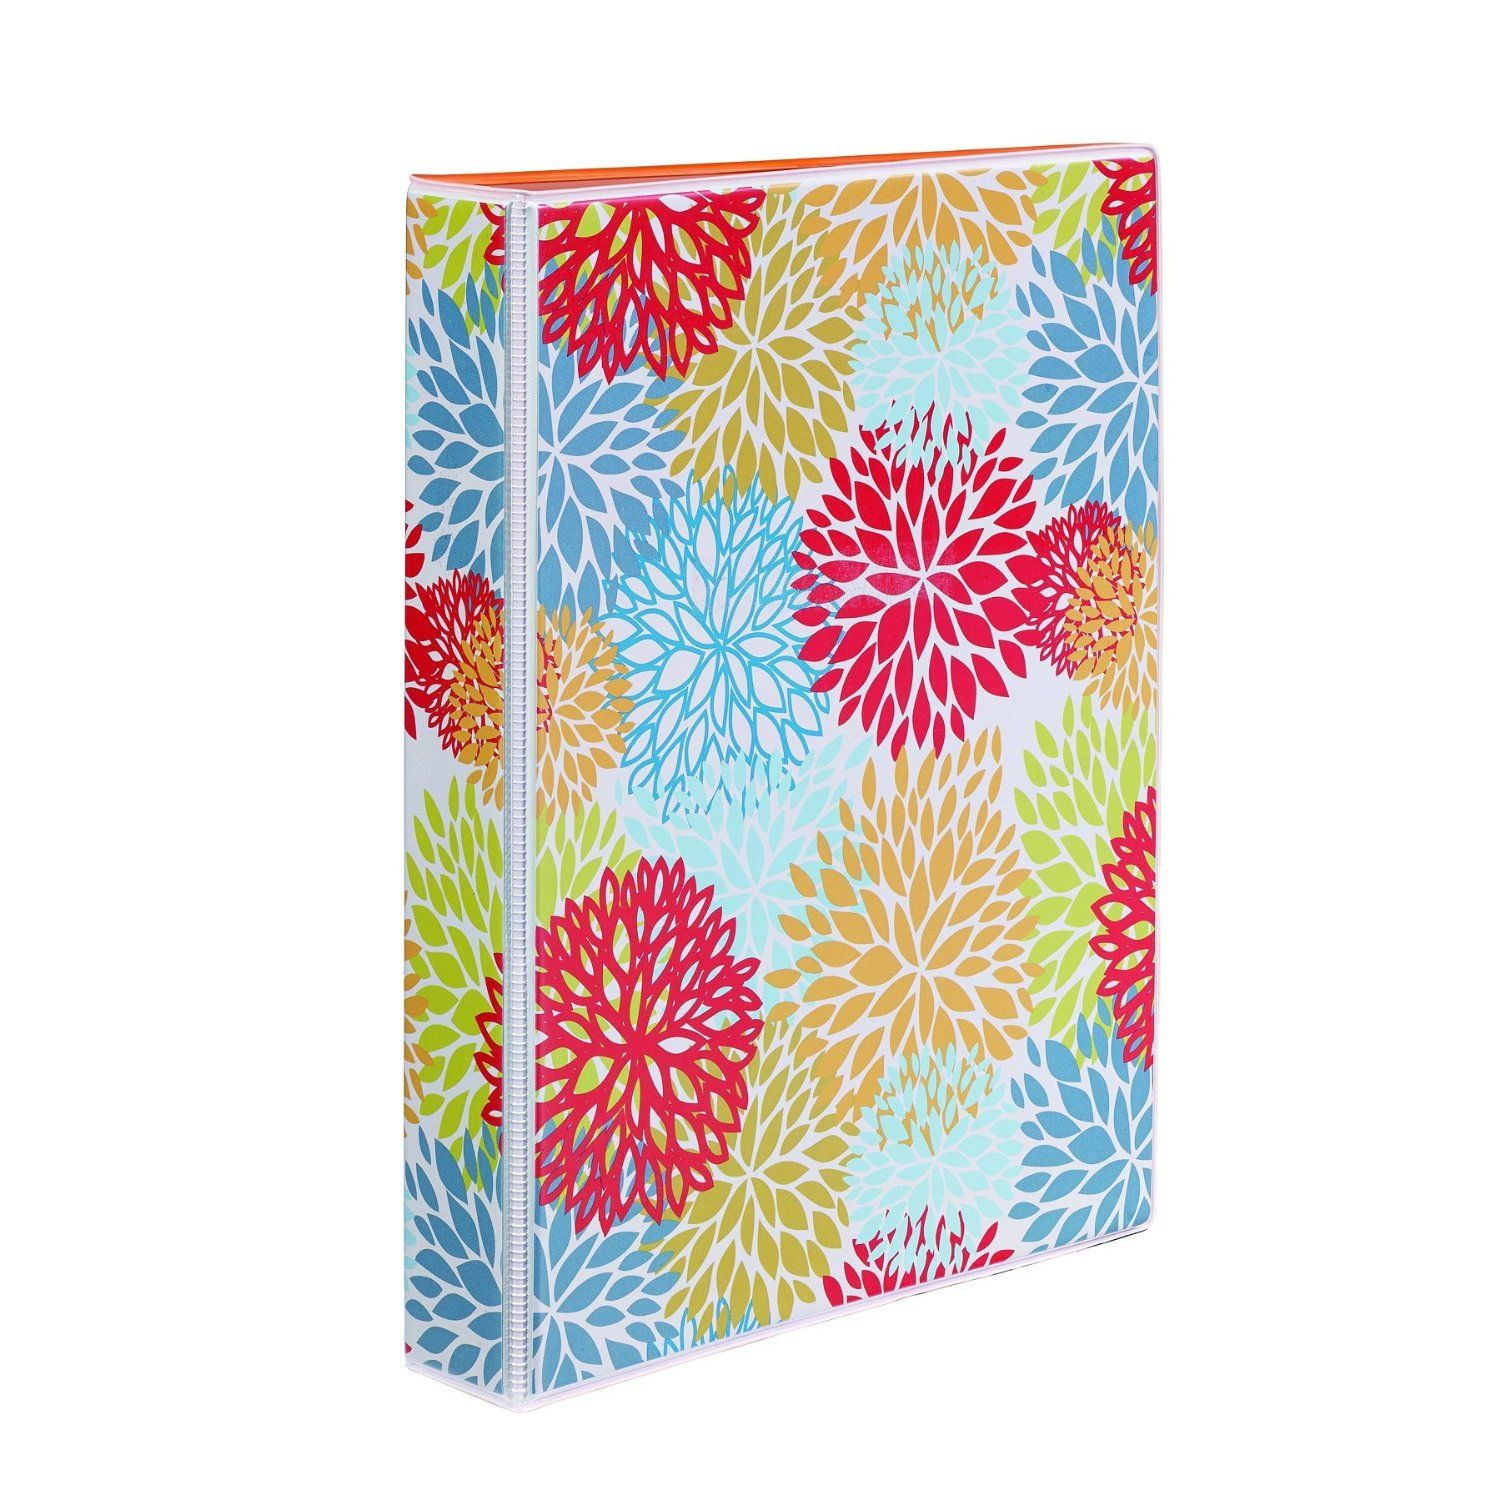 amazoncom avery 5 12 x 8 12 inches mini durable style binder with 1 inch round rings painted floral 18444 office products